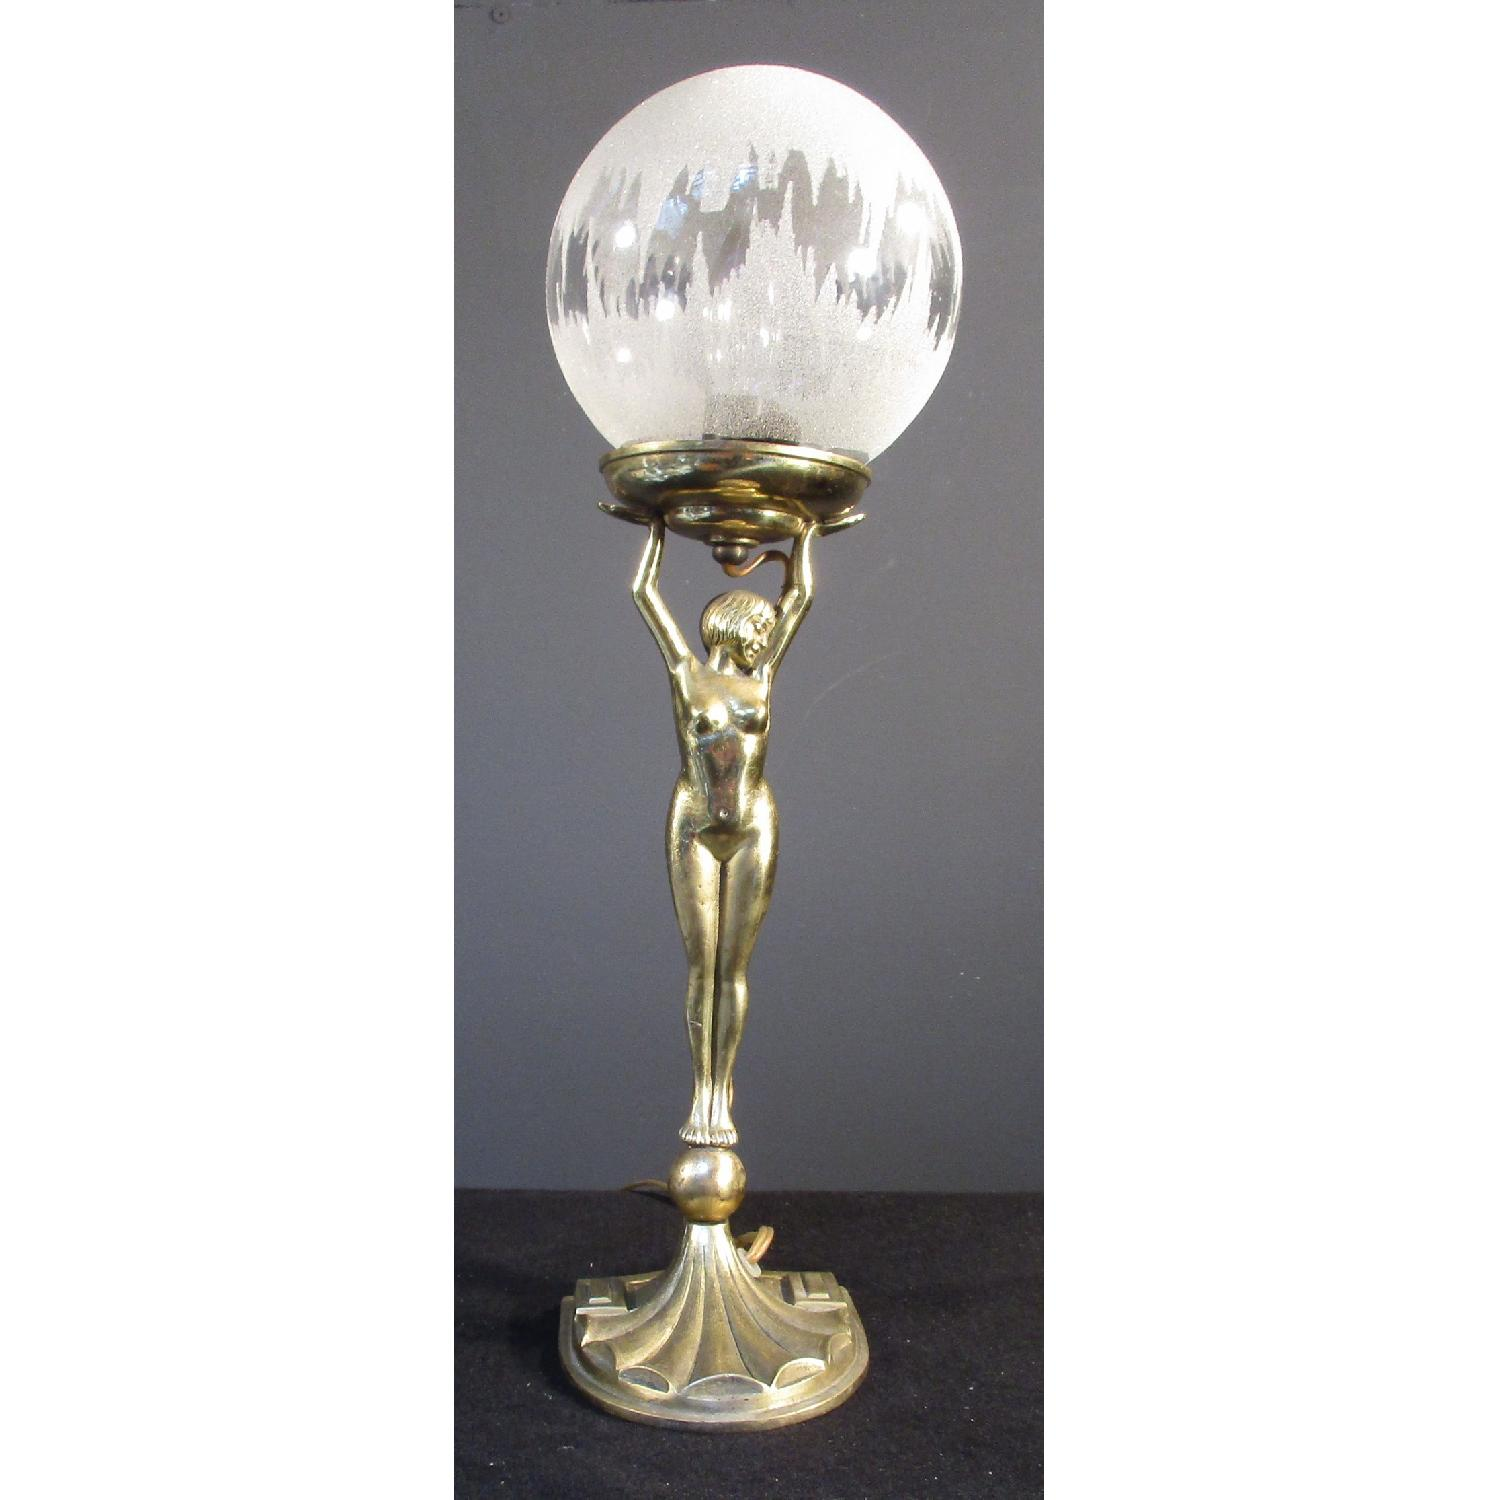 Art Deco Art Nouvea Nude Figurine Brass Lamp with Vintage Glass - image-6